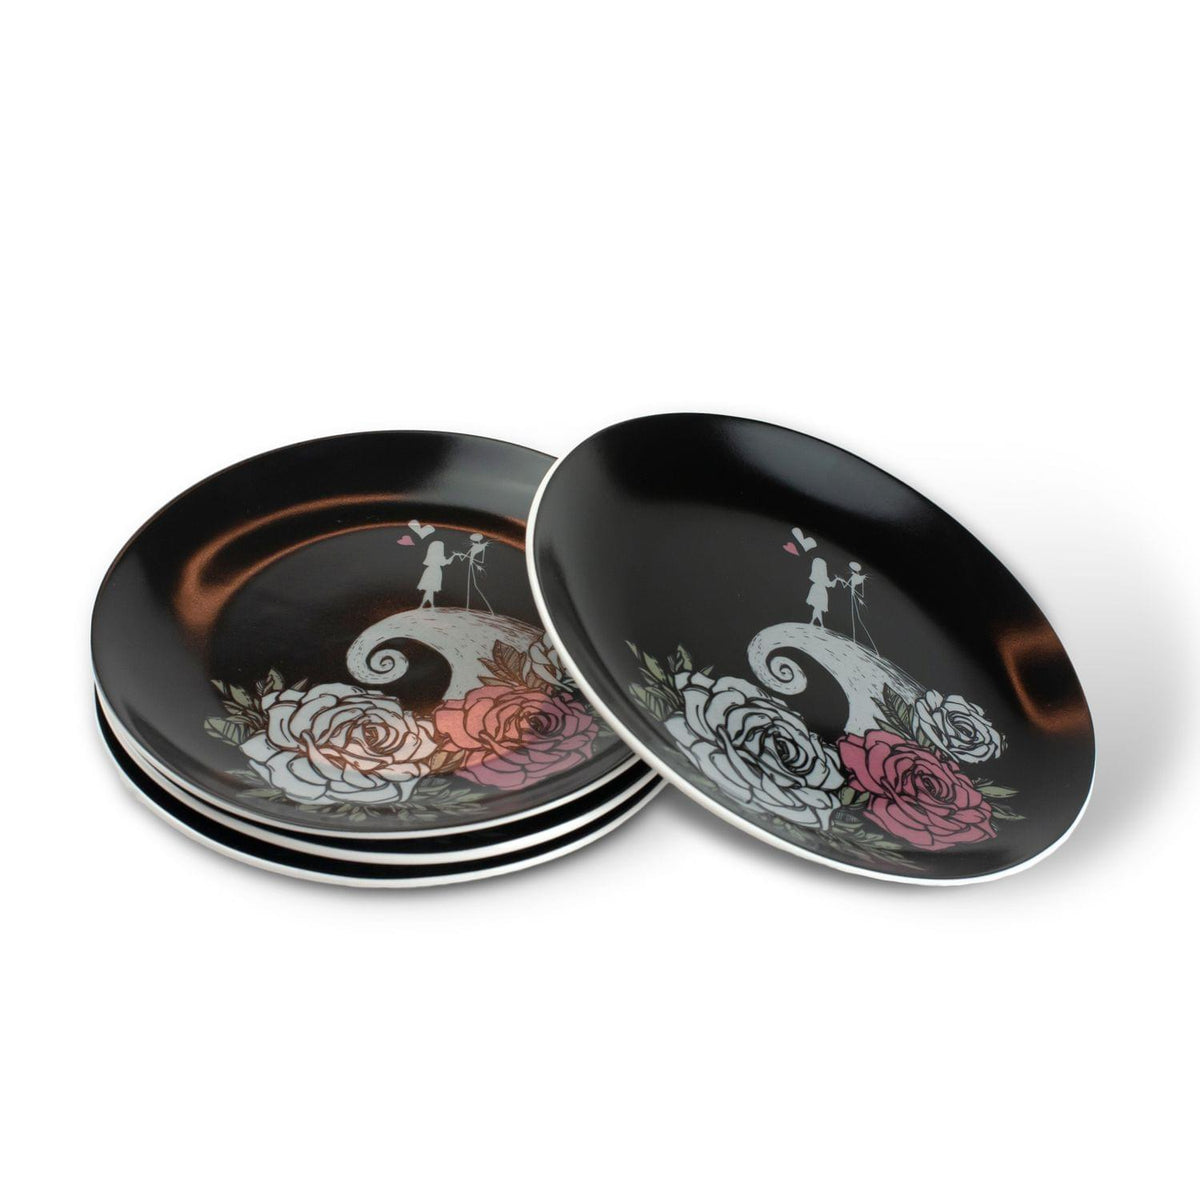 "OFFICIAL Nightmare Before Christmas 8"" Plate 